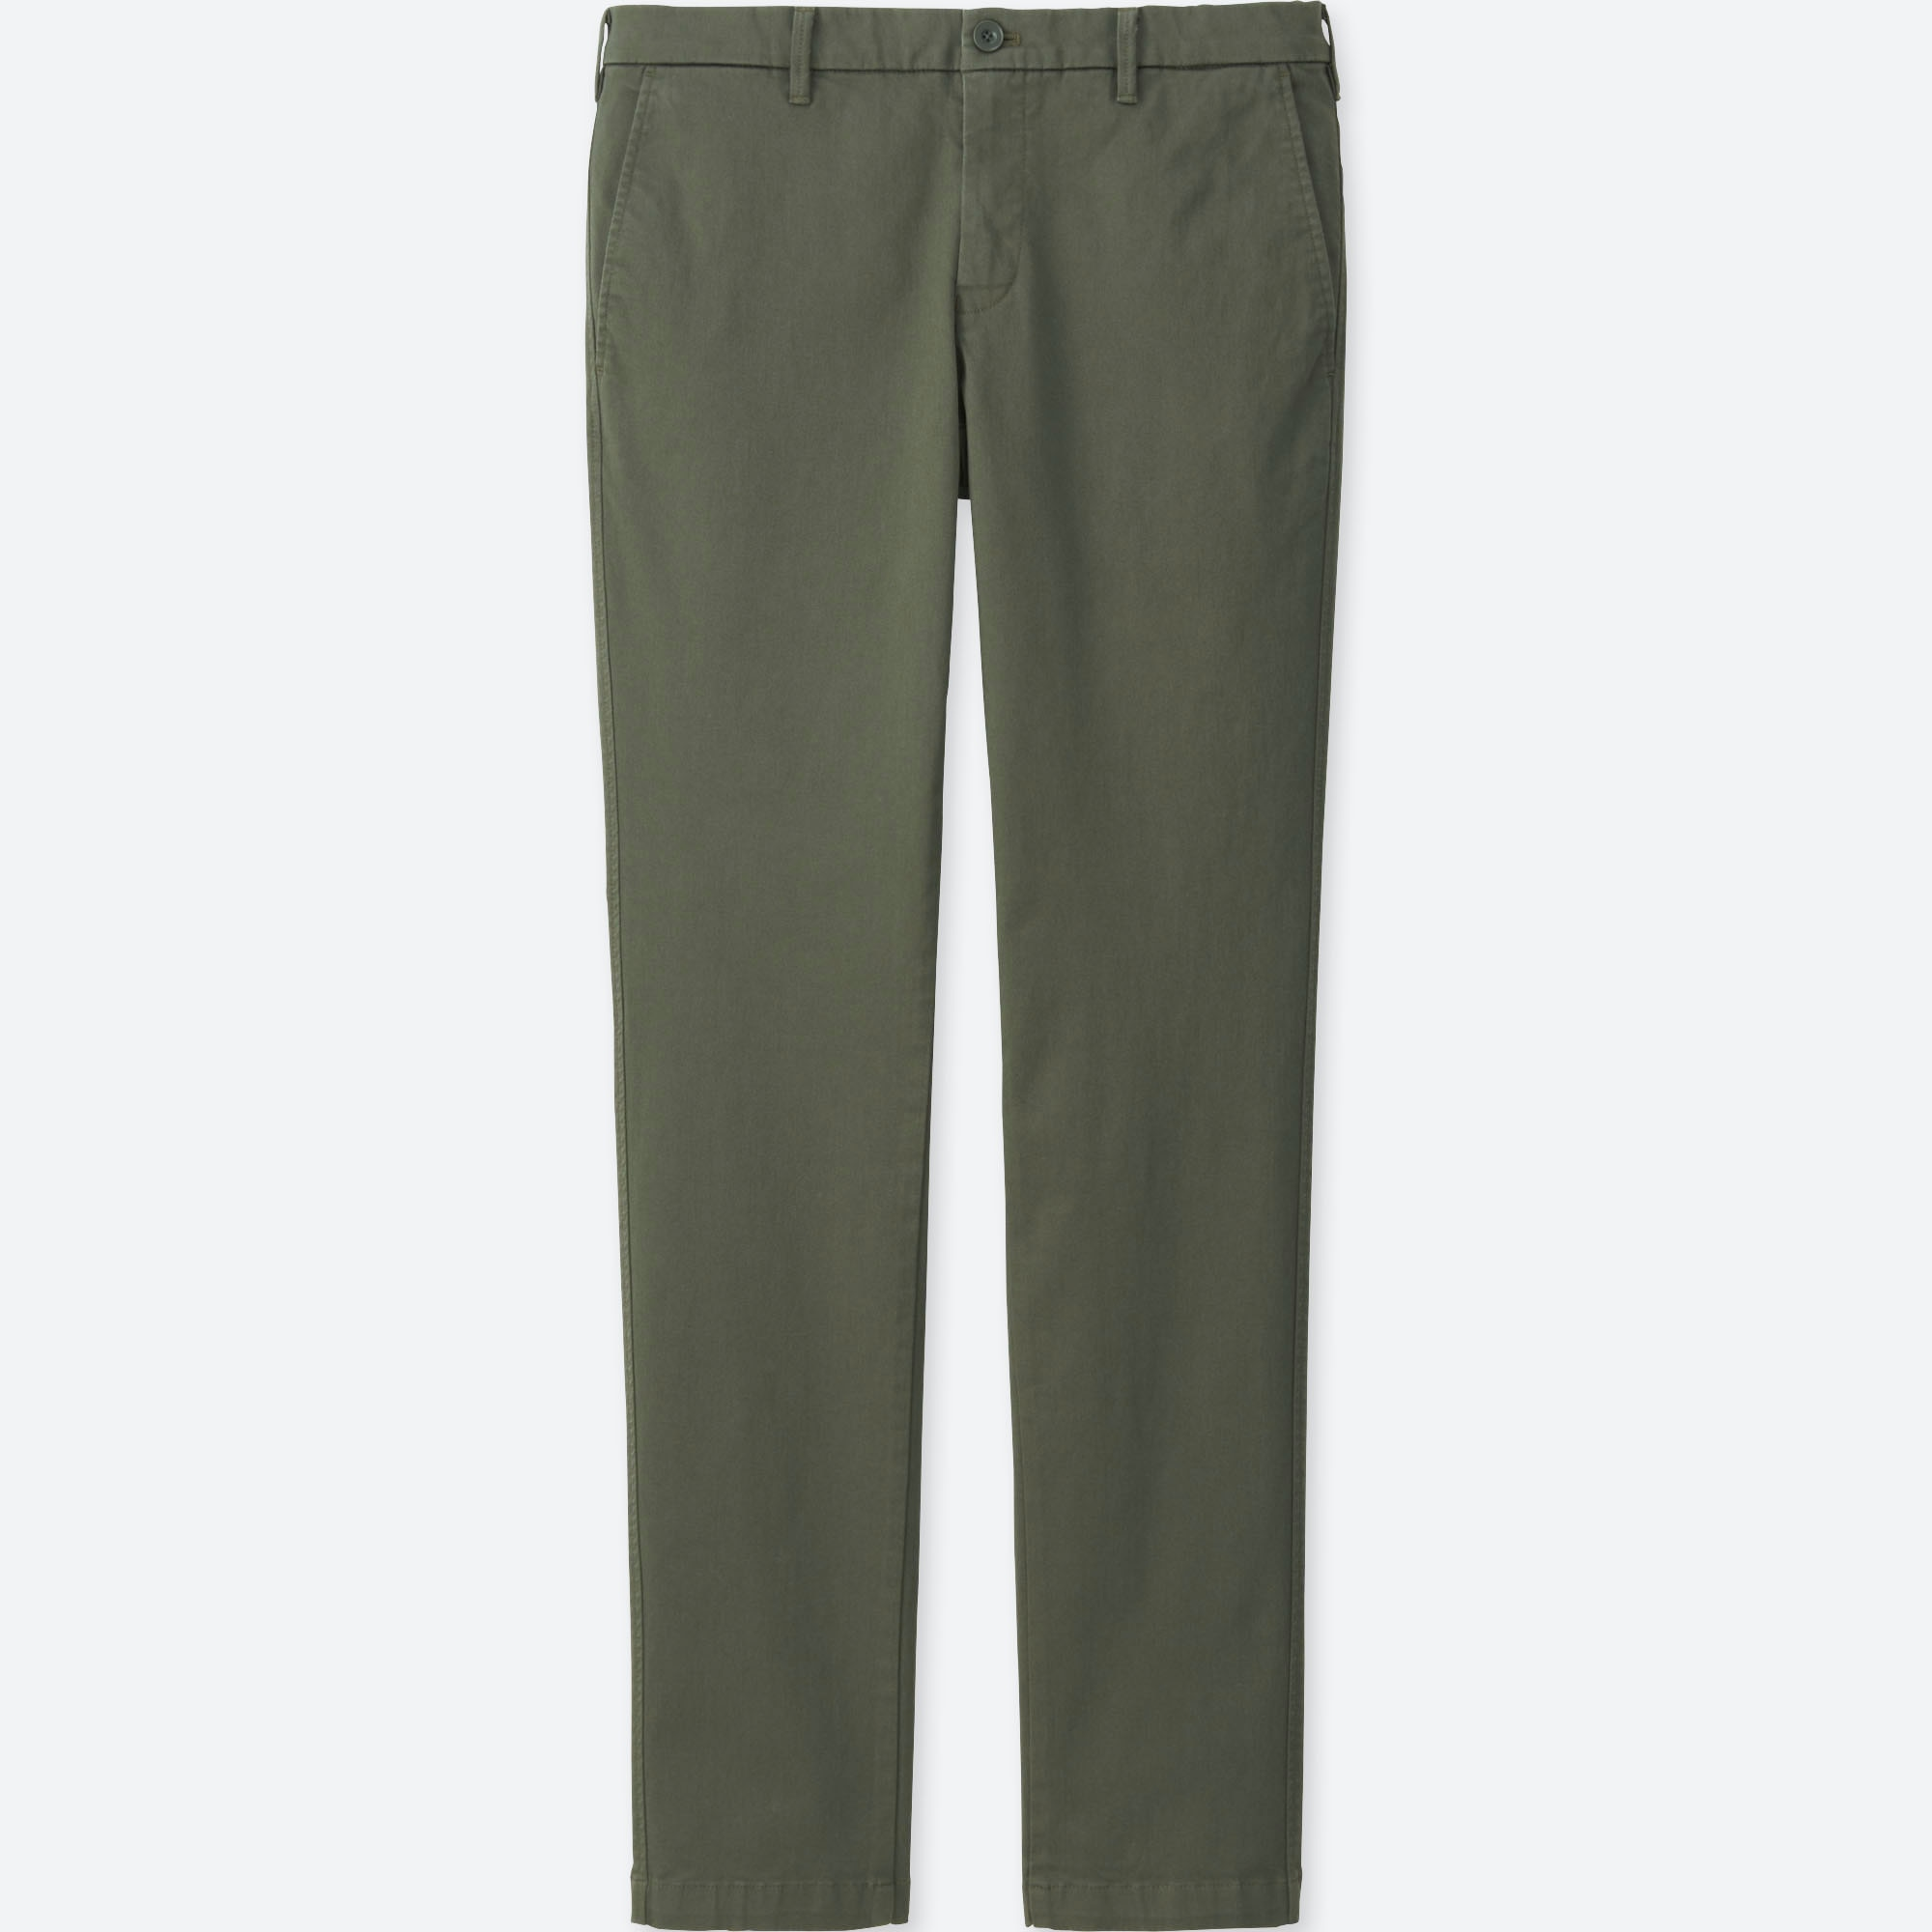 MEN ULTRA STRETCH SKINNY FIT CHINO FLAT FRONT PANTS